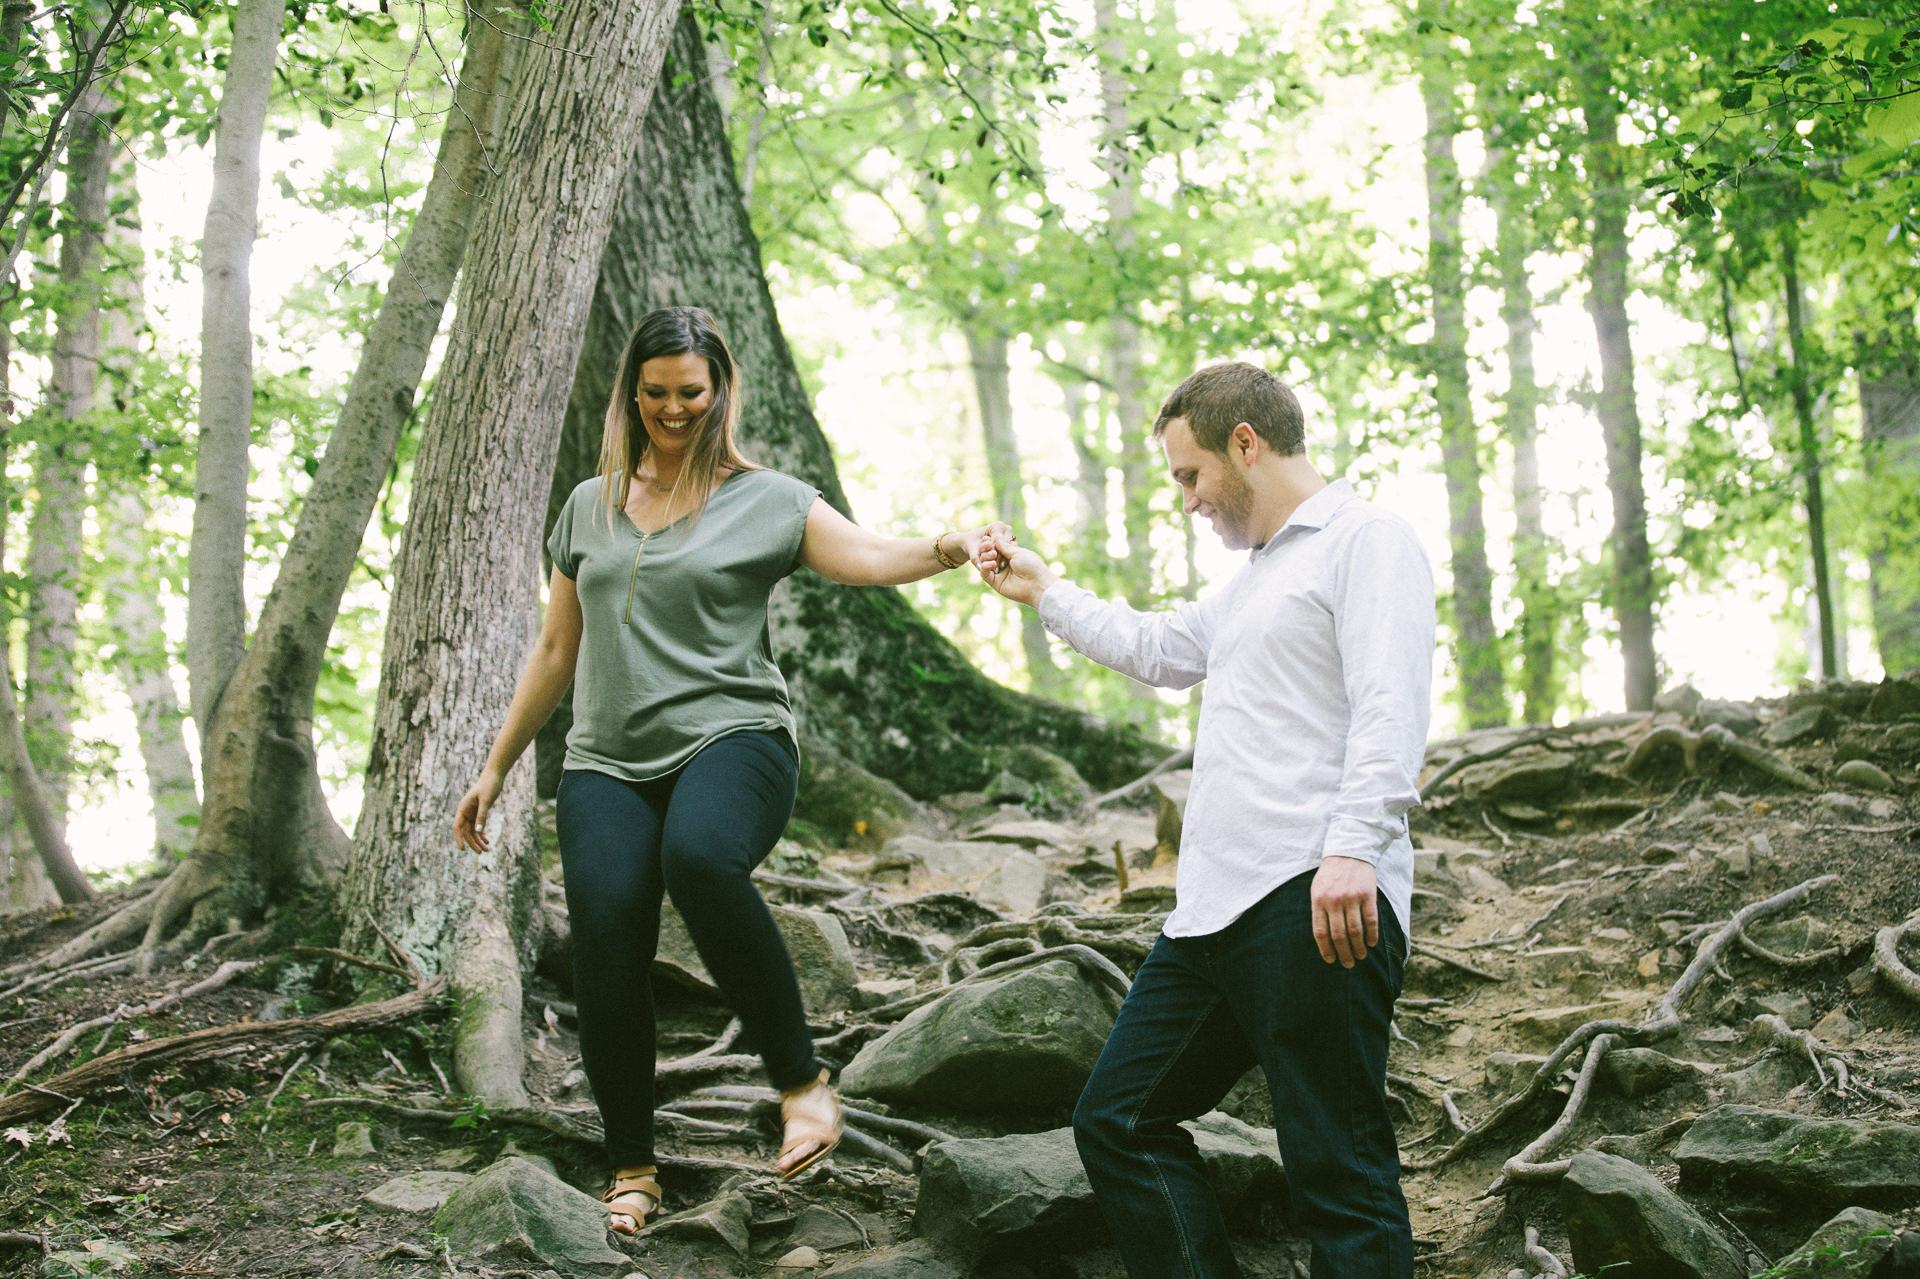 Cuyahoga Valley National Park Engagement Photos 1.jpg